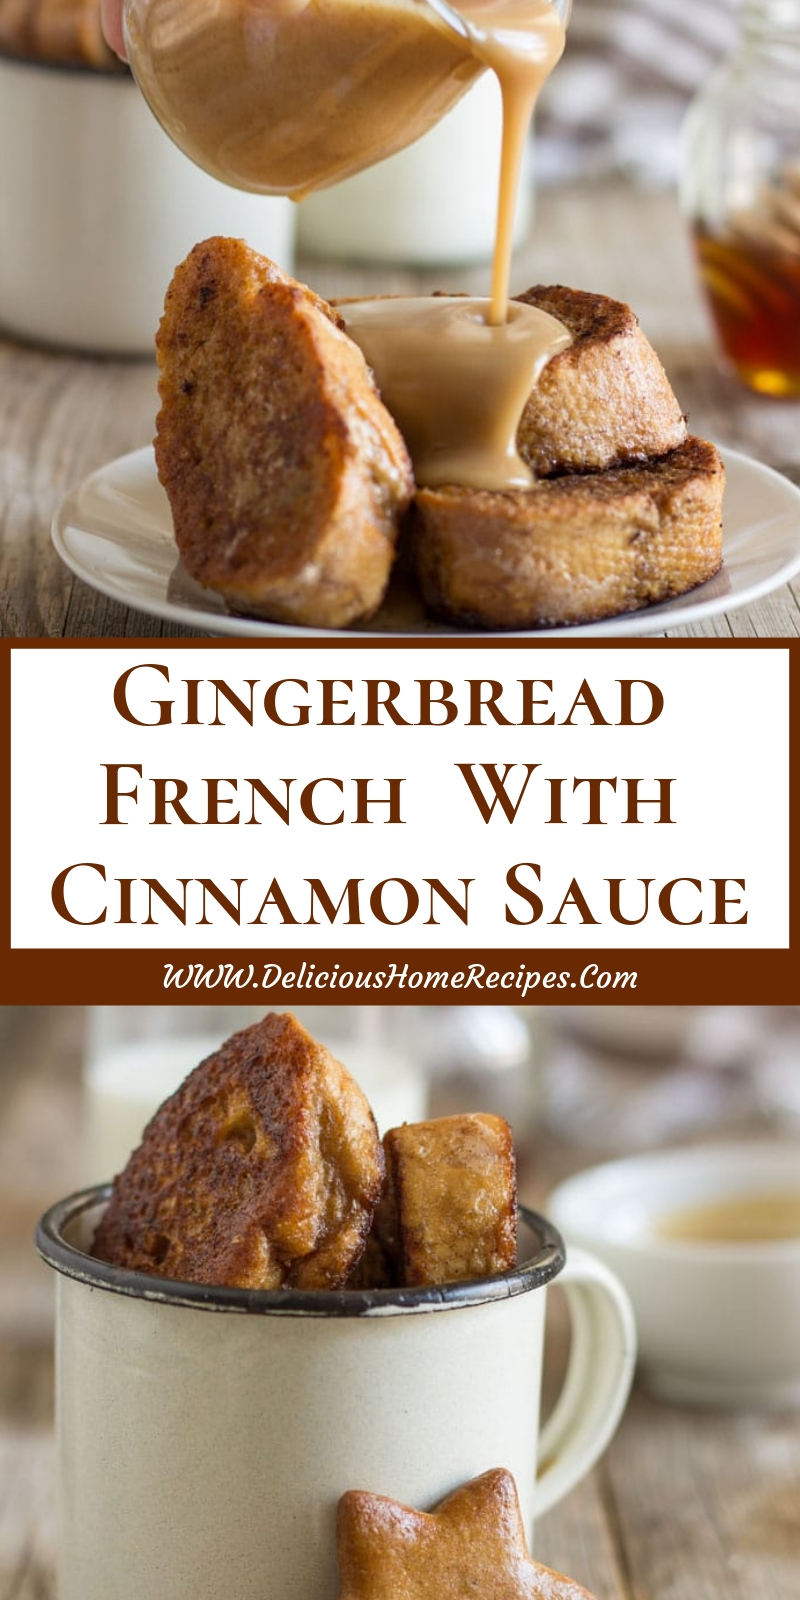 Gingerbread French  With Cinnamon Sauce